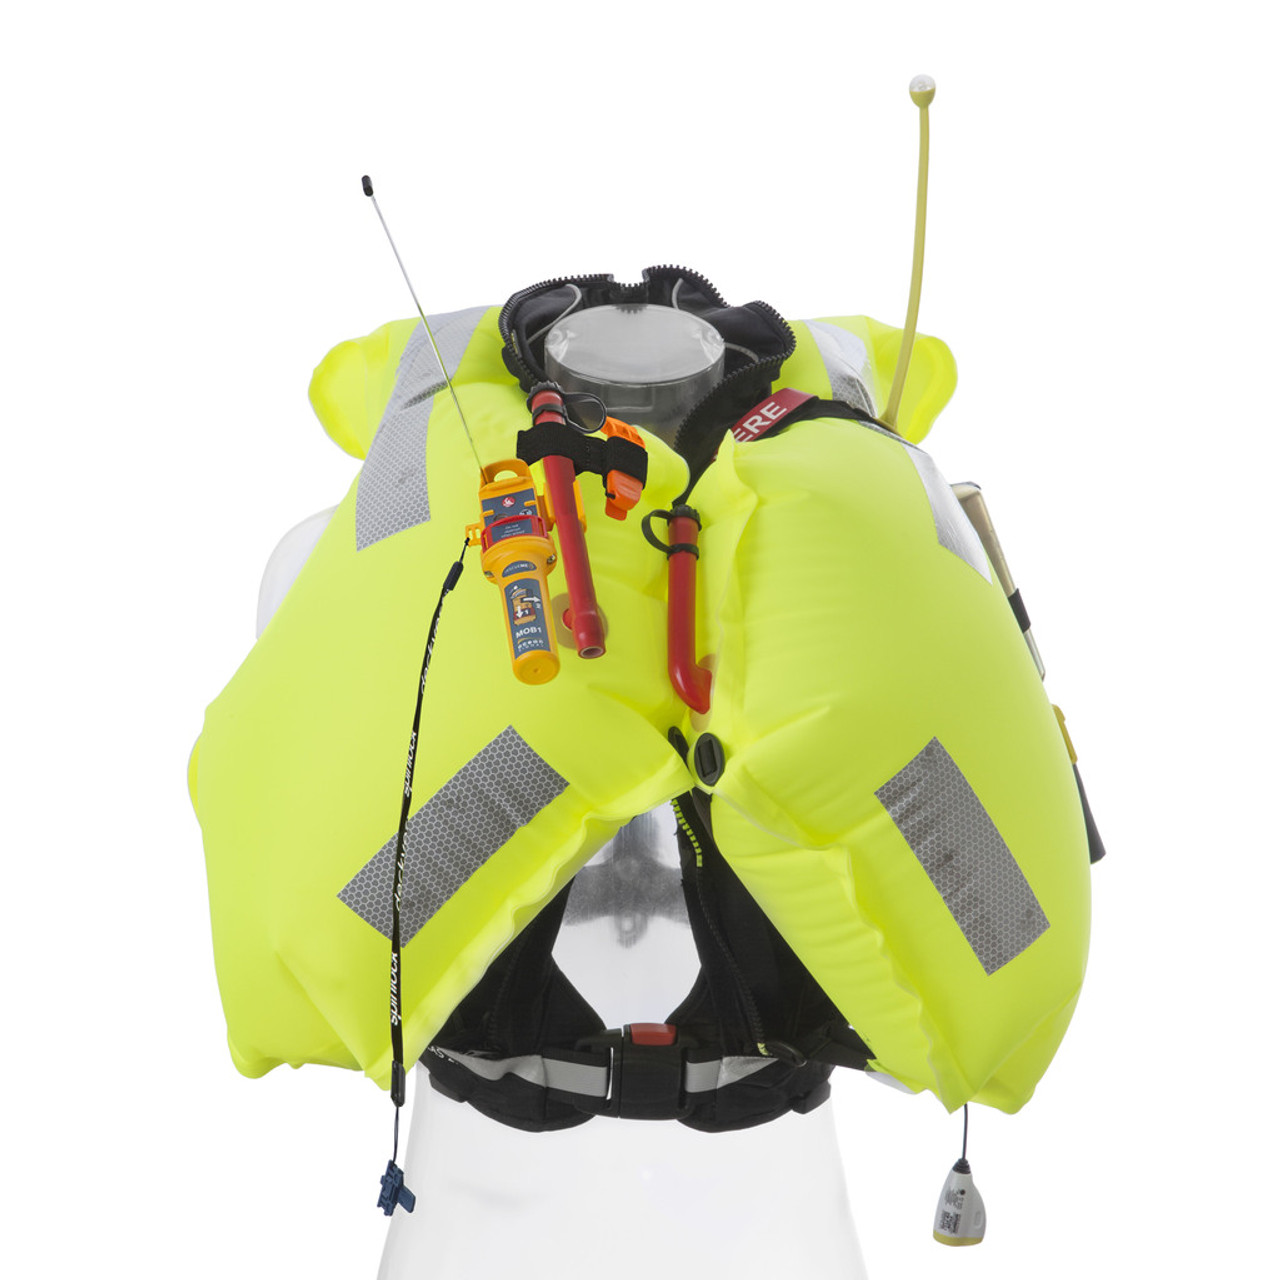 Spinlock SOLAS 275N Deckvest Lifejacket - Inflated with AIS MOB1 fitted